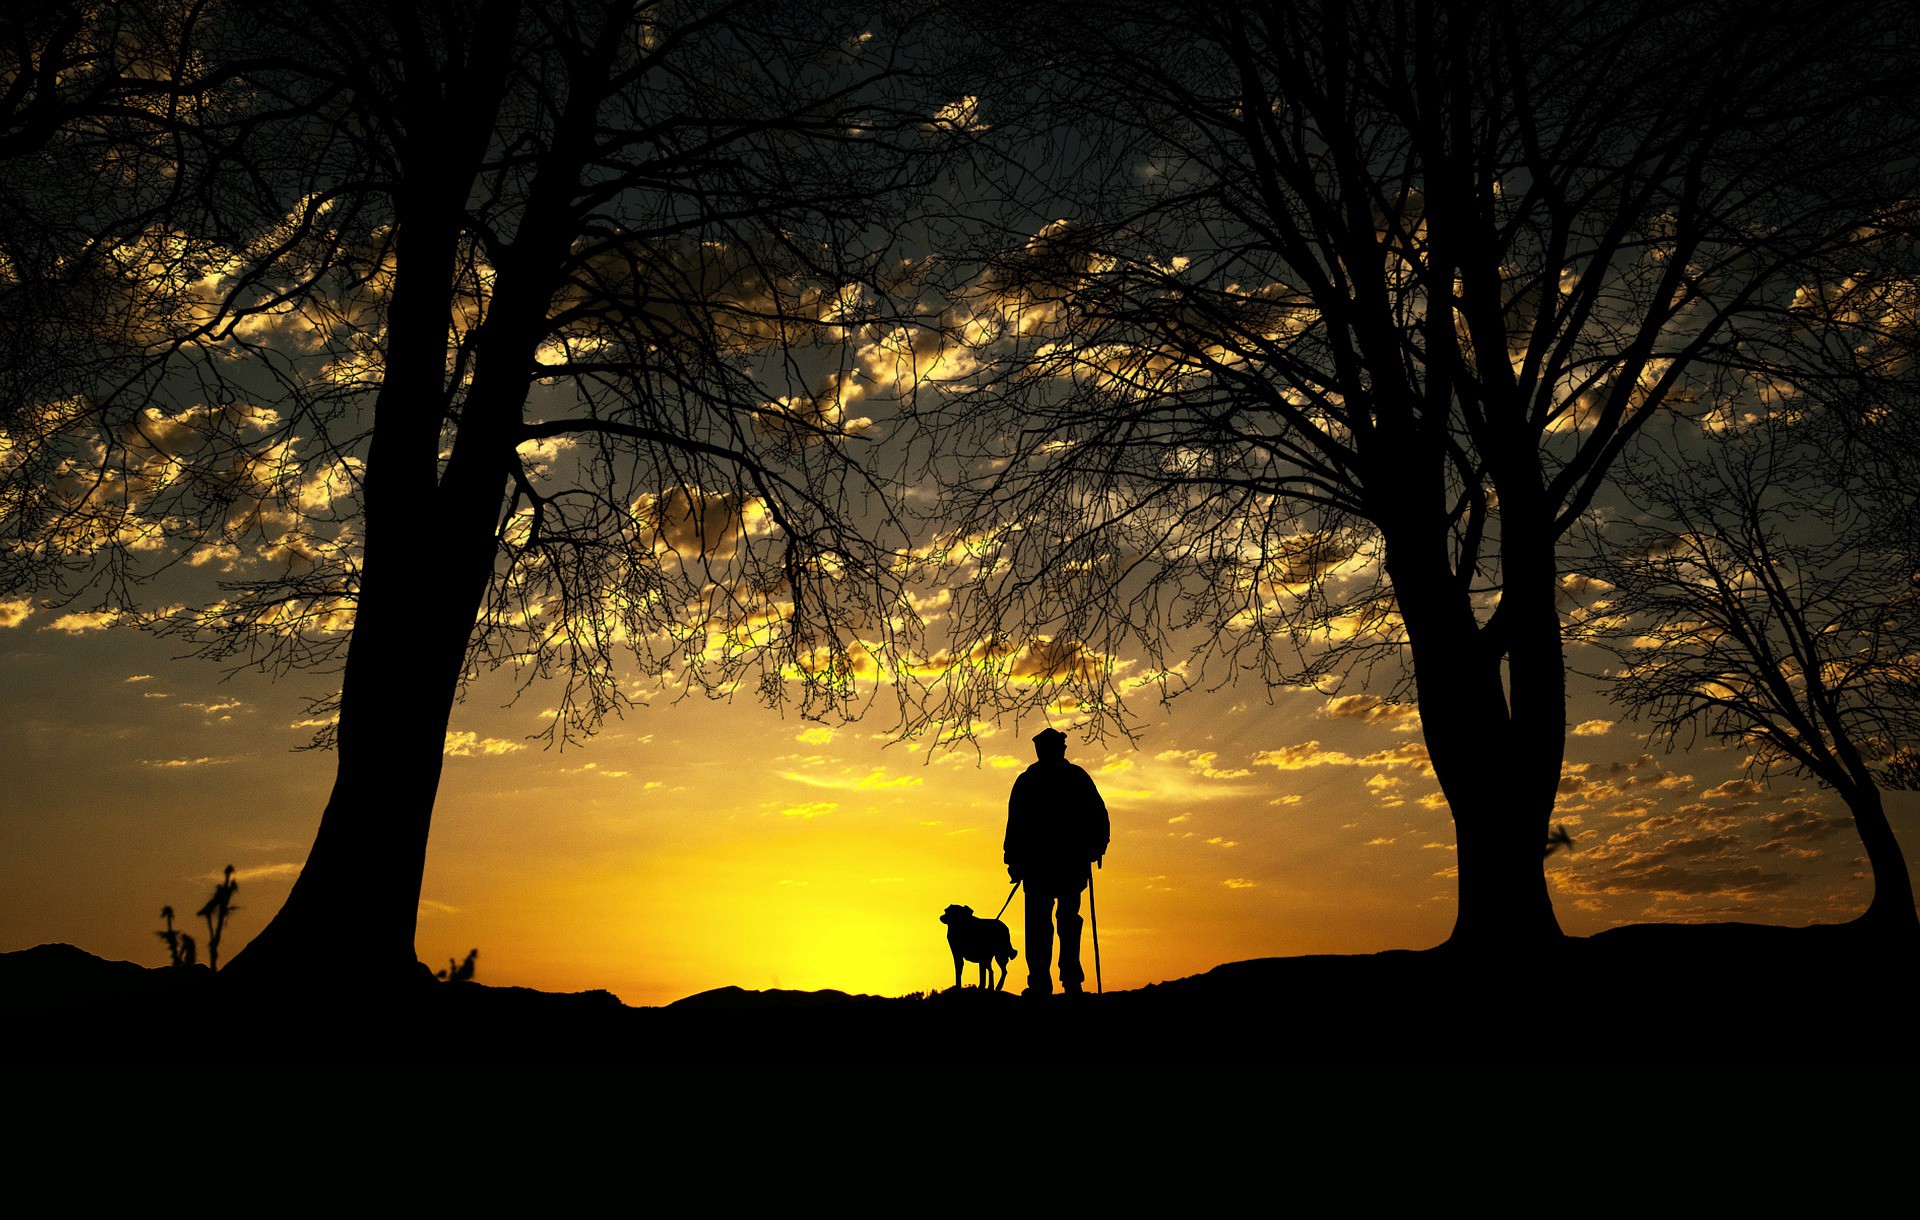 A man and dog enjoy the beauty of nature in the evening woodland sunset.